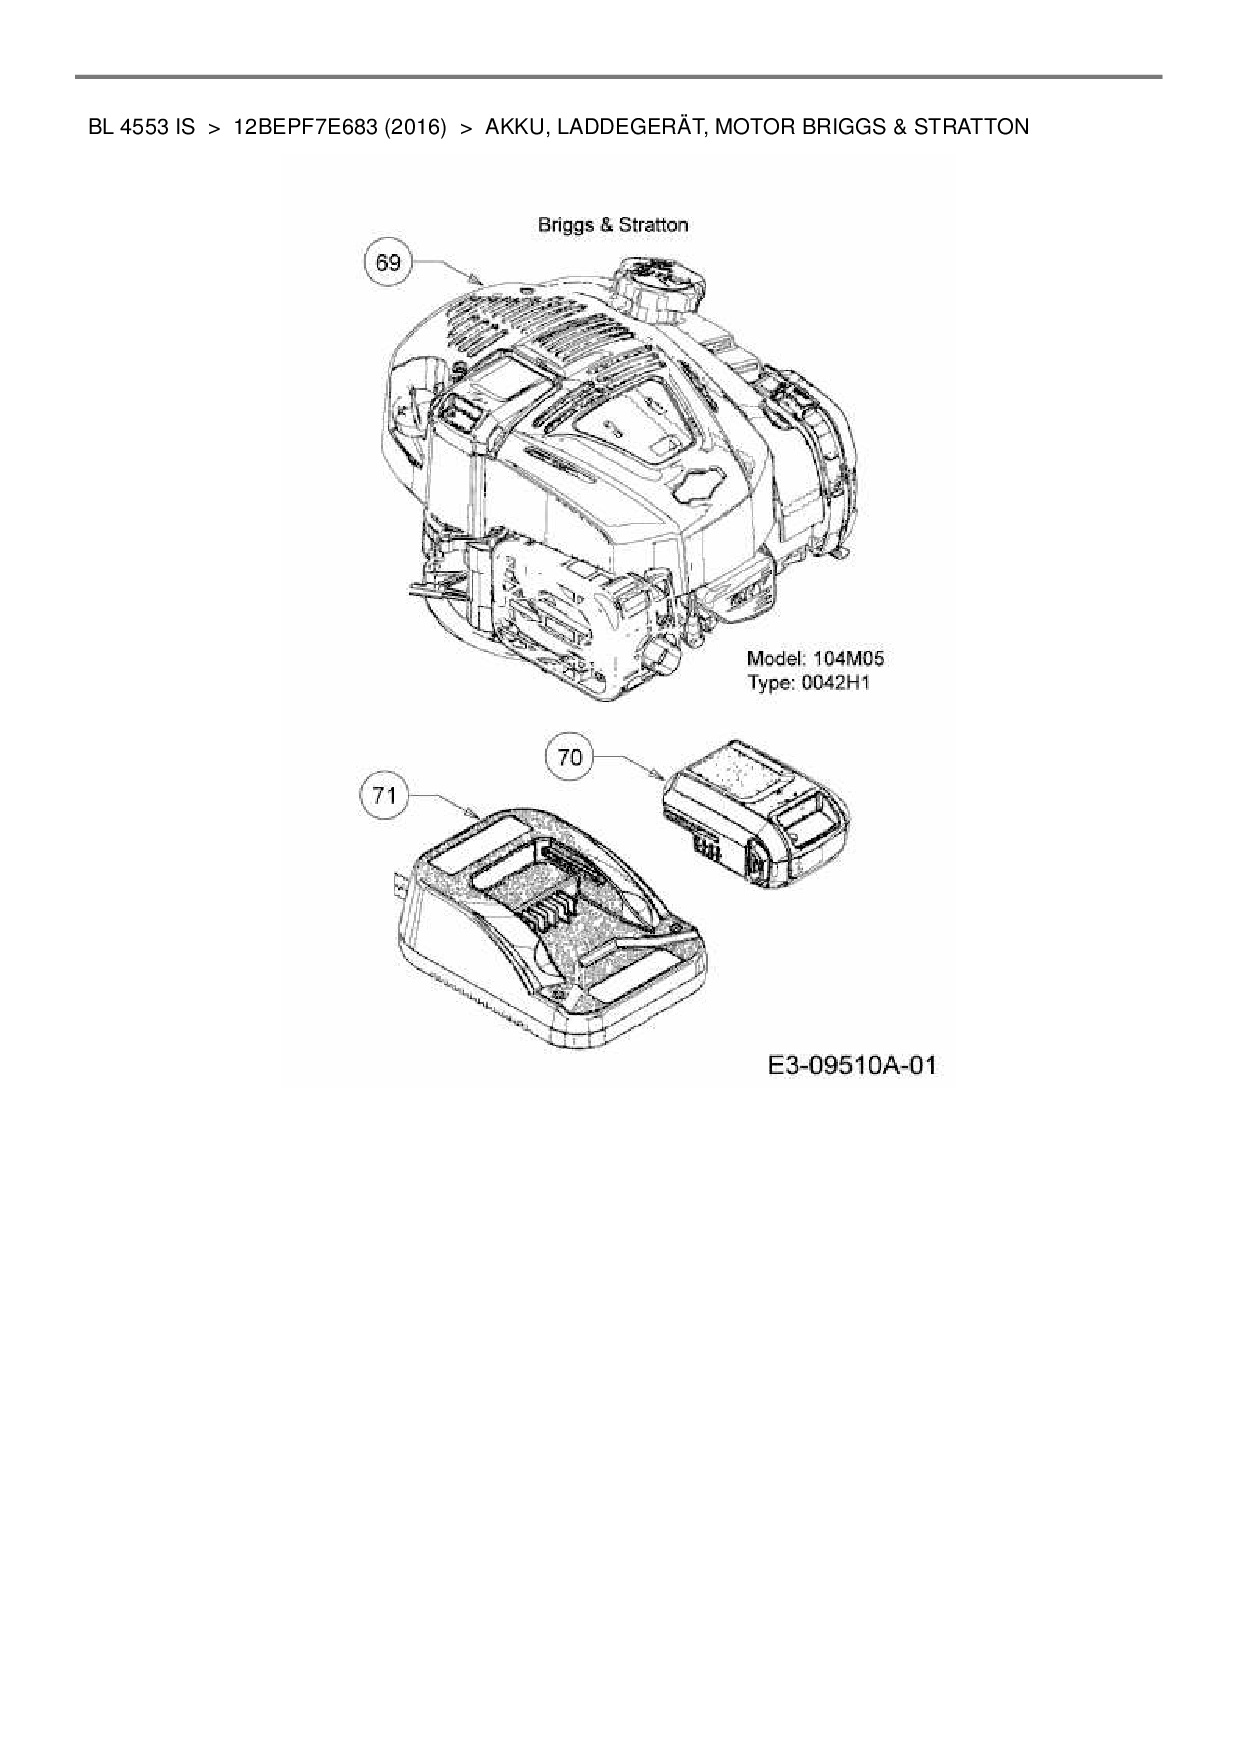 Briggs And Stratton 5 Hp Horizontal Shaft Repair Manual